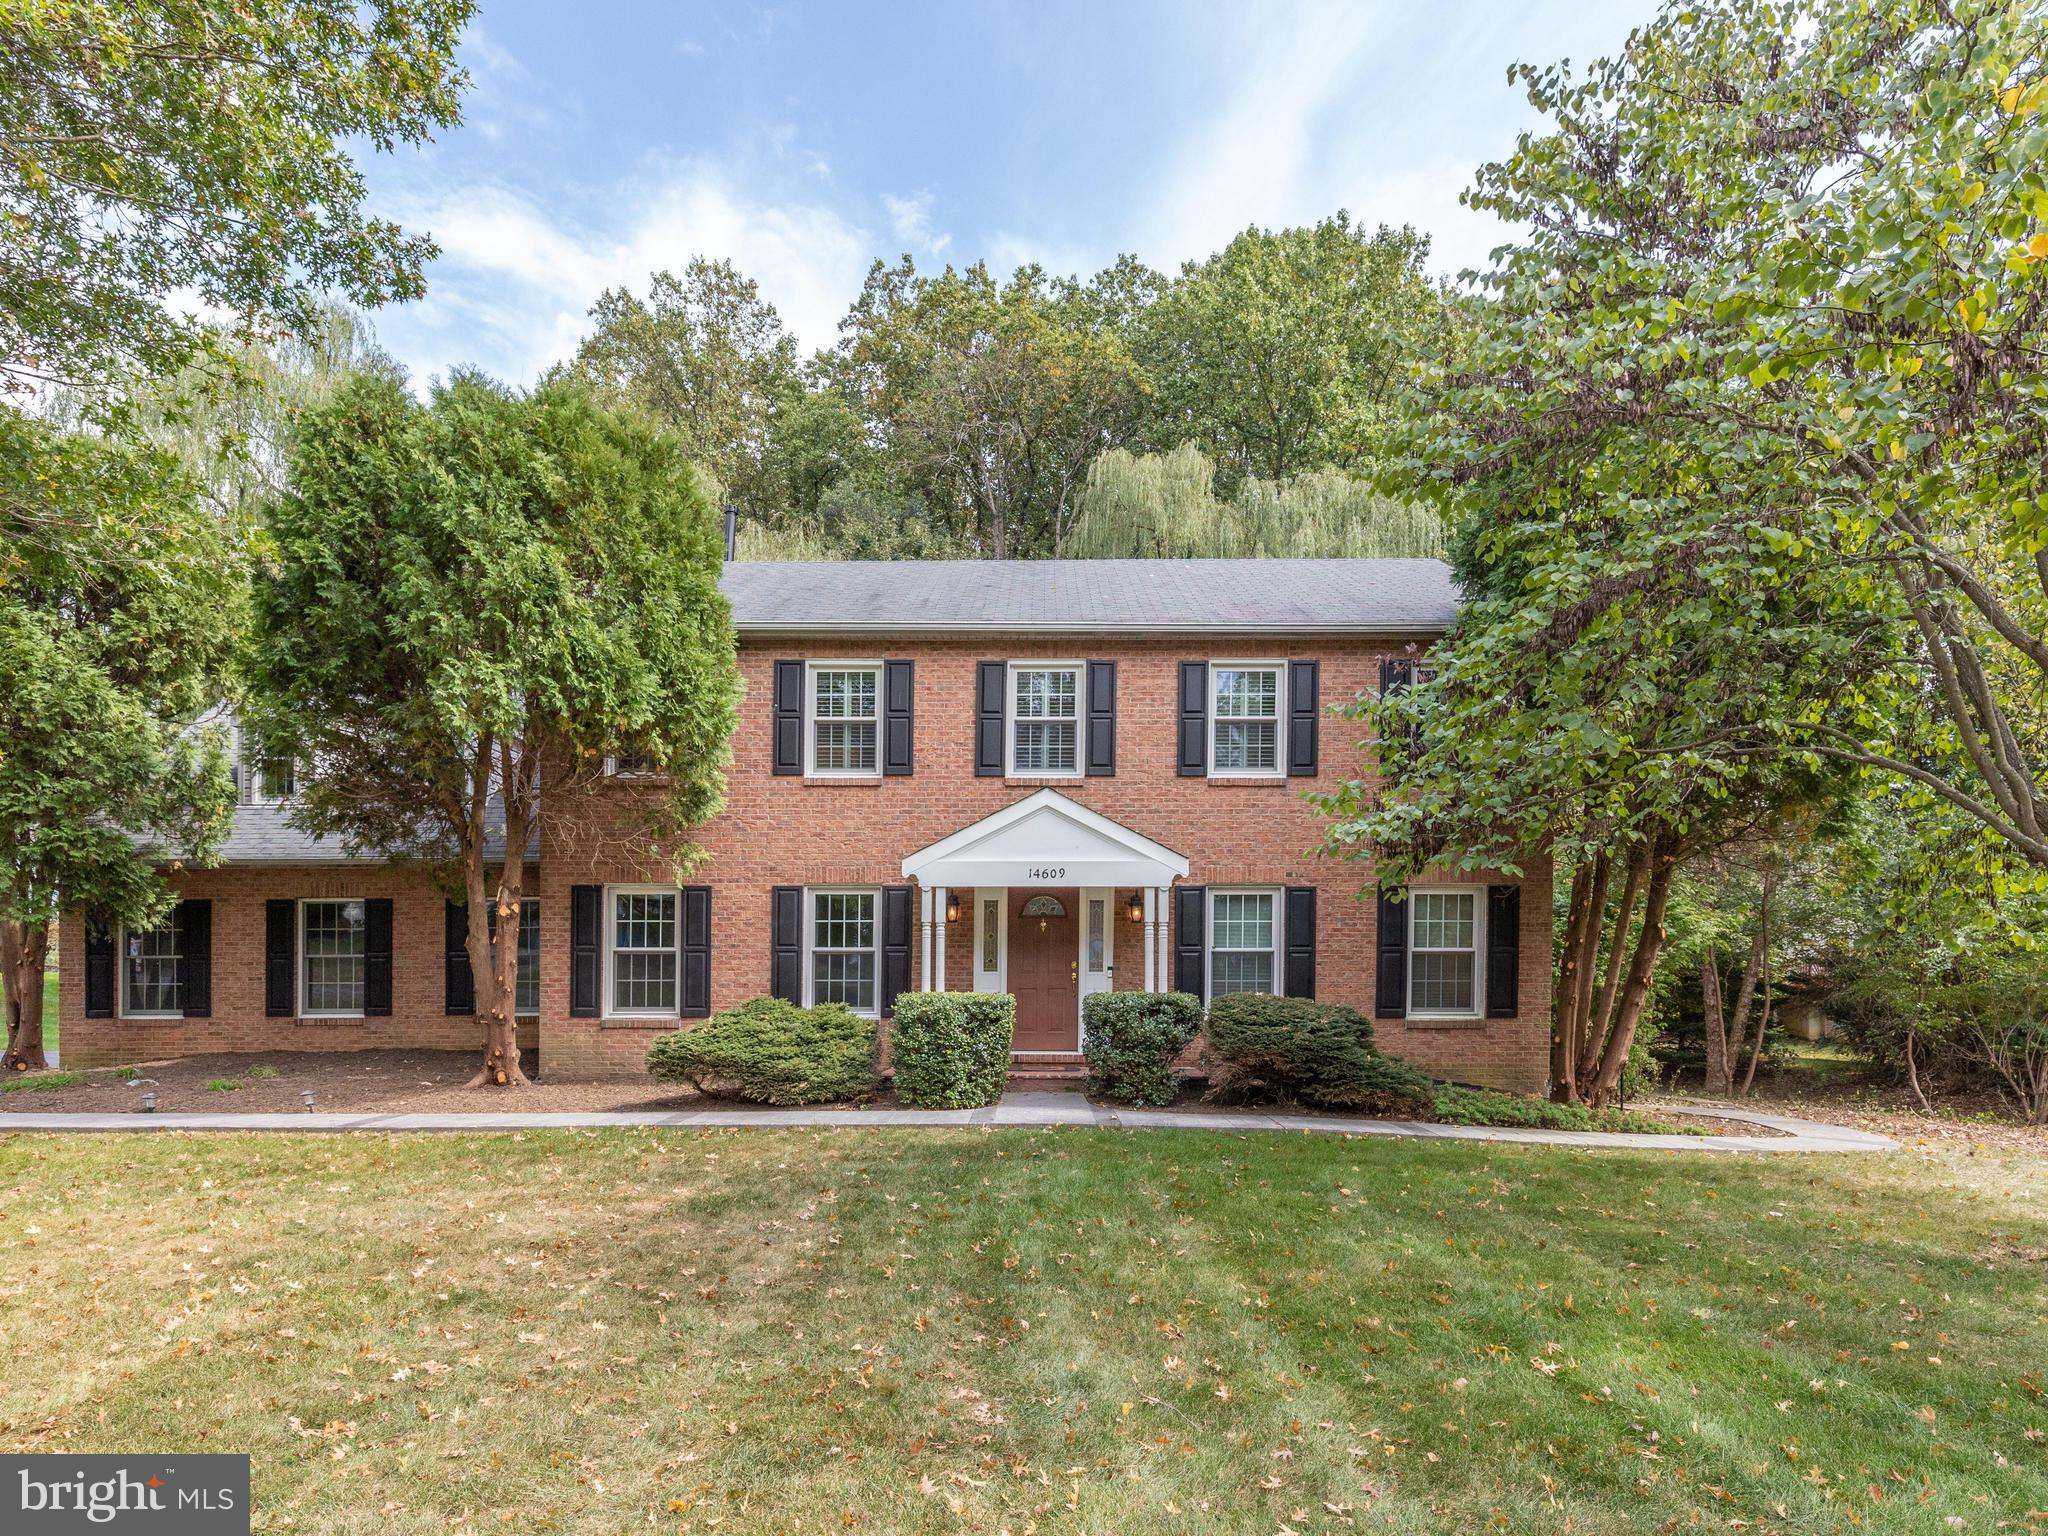 14609 JAYSTONE DRIVE, SILVER SPRING, MD 20905